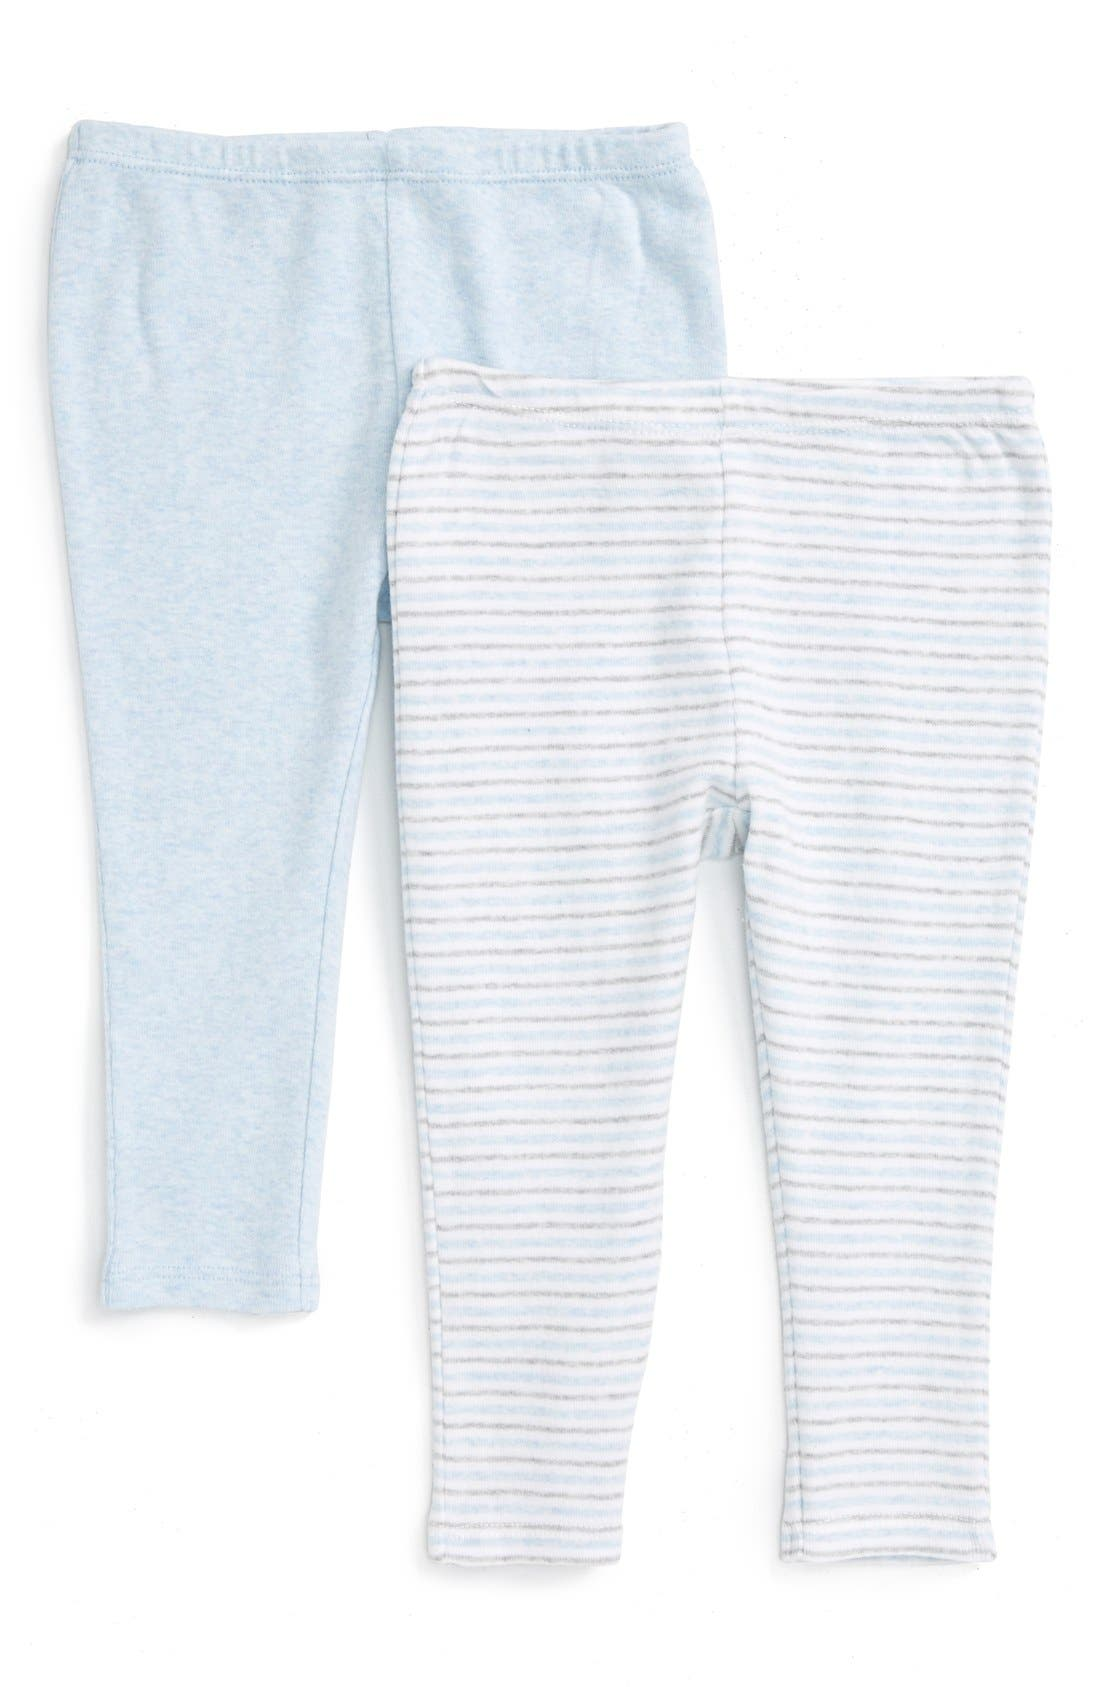 NORDSTROM BABY, 2-Pack Leggings, Main thumbnail 1, color, BLUE PRECIOUS HEATHER PACK